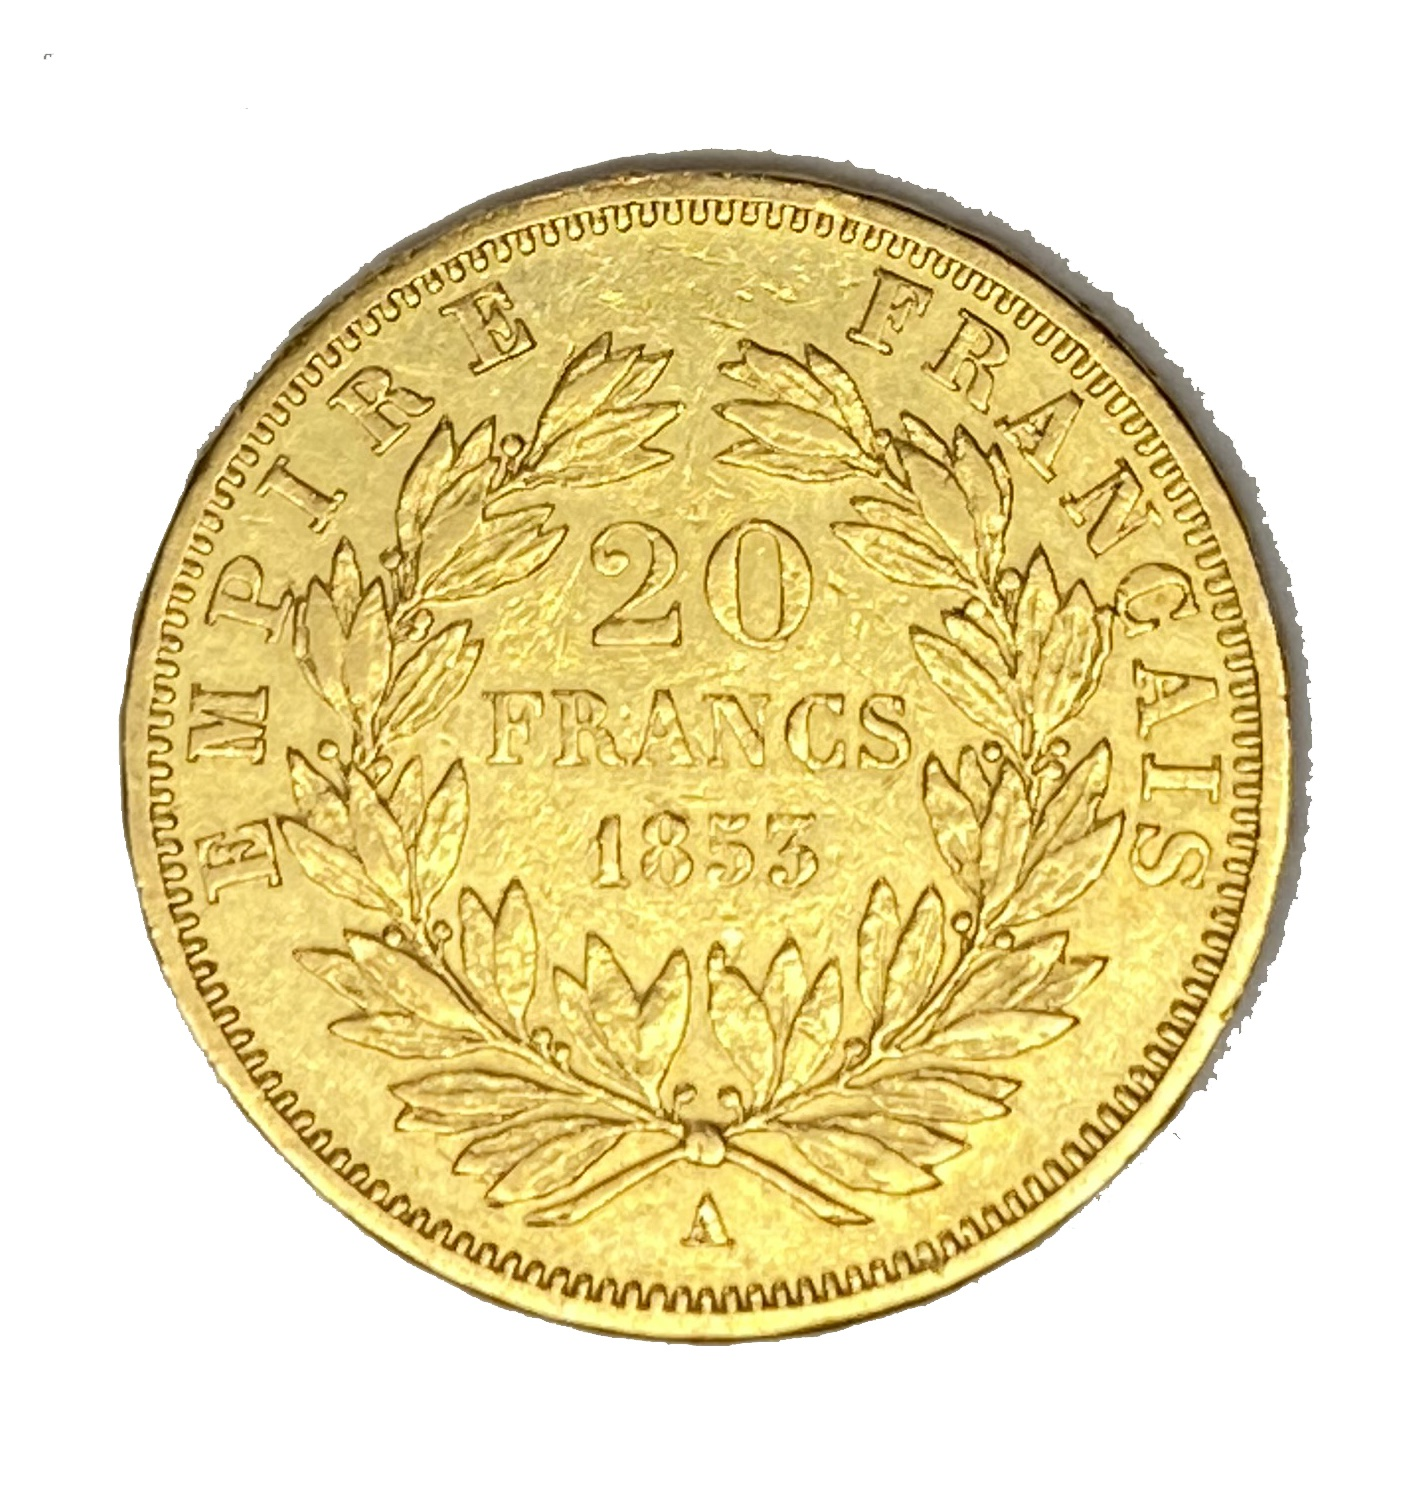 French Empire 20 Franc gold coin, Napoleon III, 1853 - Image 2 of 2